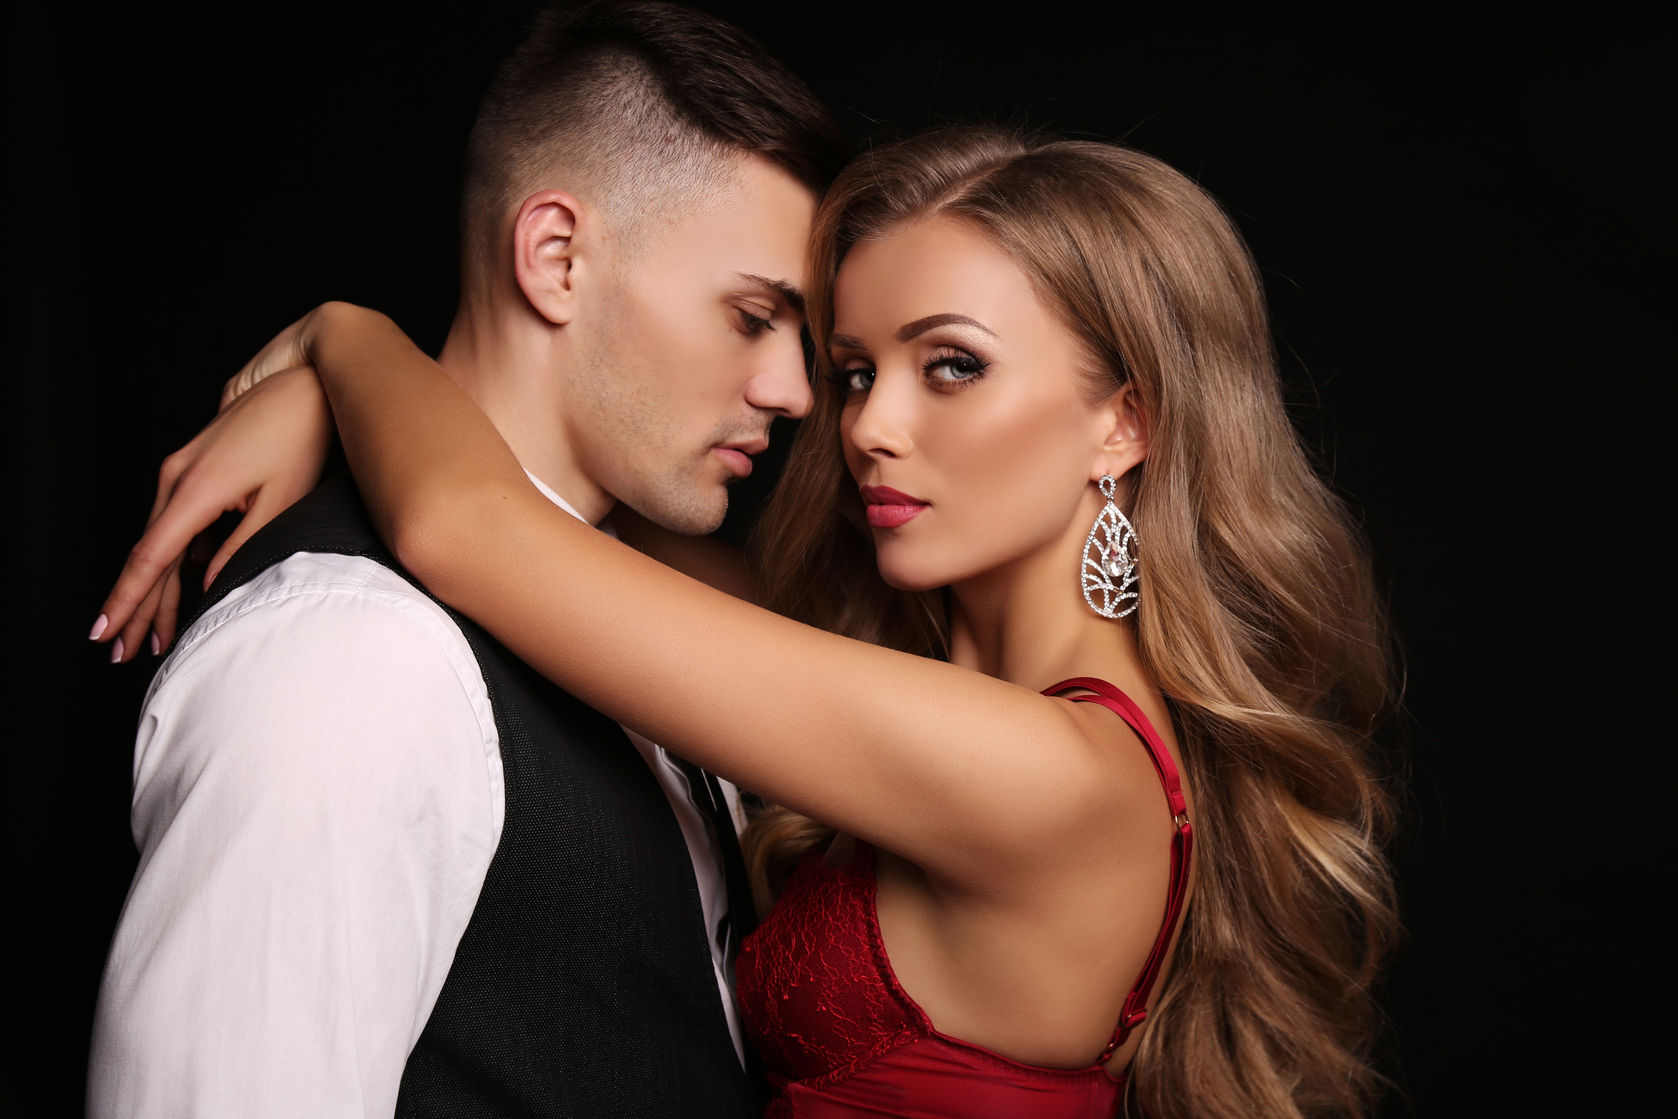 51693375 - fashion studio photo of beautiful couple in elegant clothes, gorgeous woman with long blond hair embracing handsome brunette man